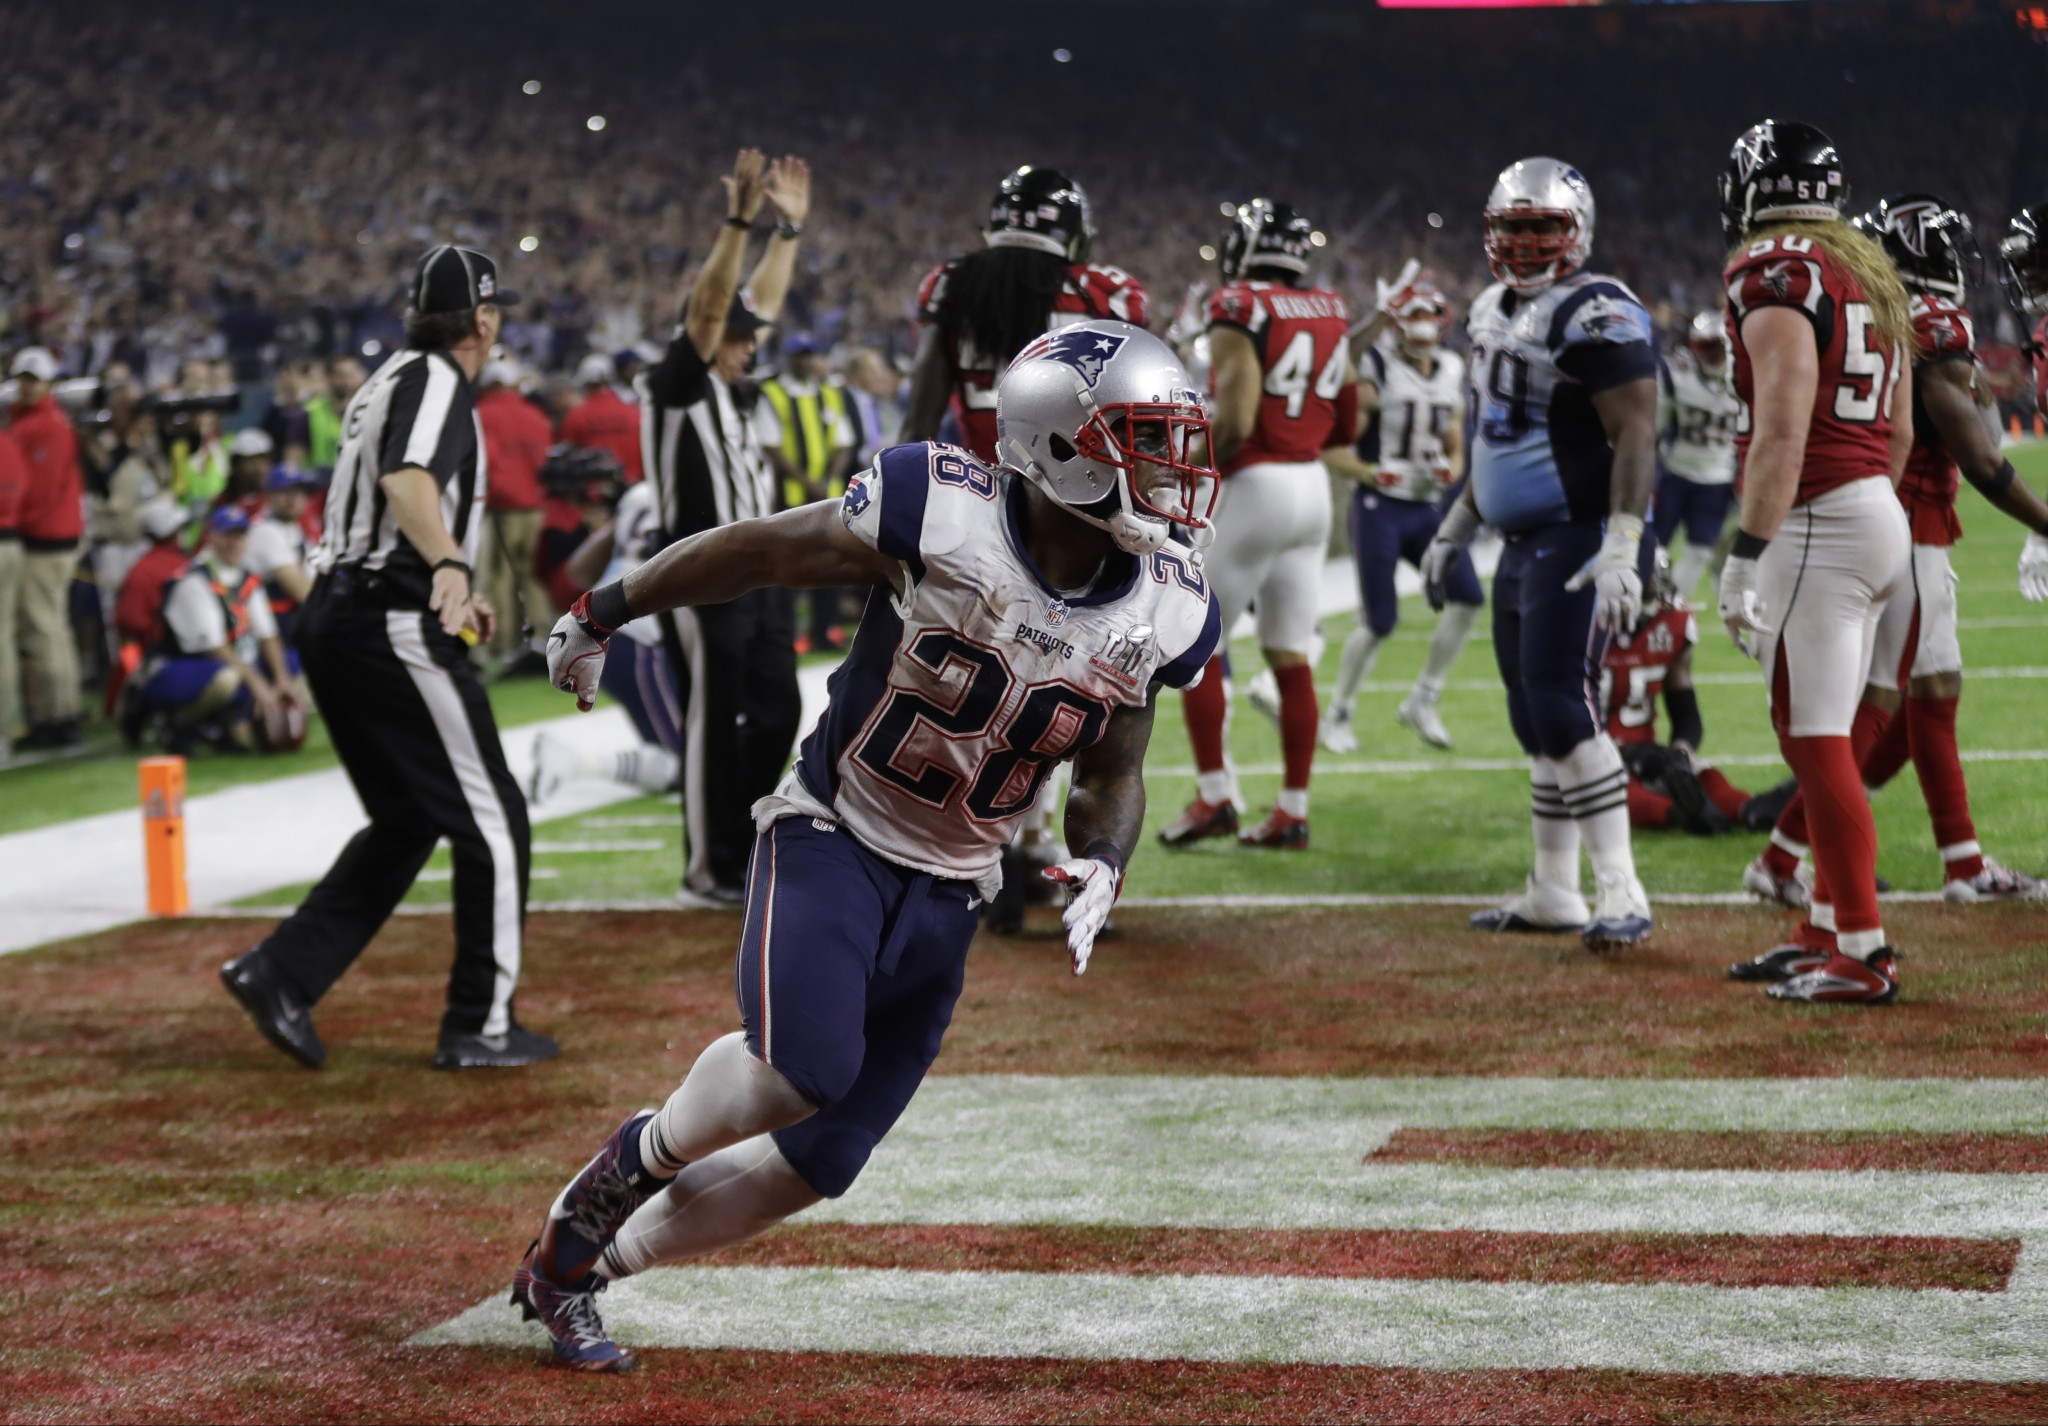 NFL reduces overtime period from 15 minutes to 10, but why?